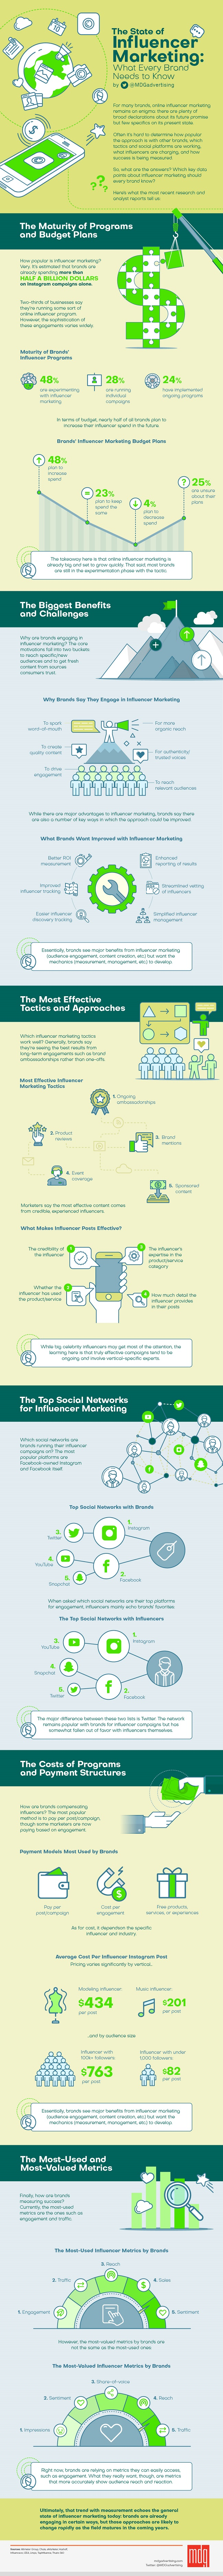 The State of Influencer Marketing: What Every Brand Needs to Know [Infographic]   Social Media Today